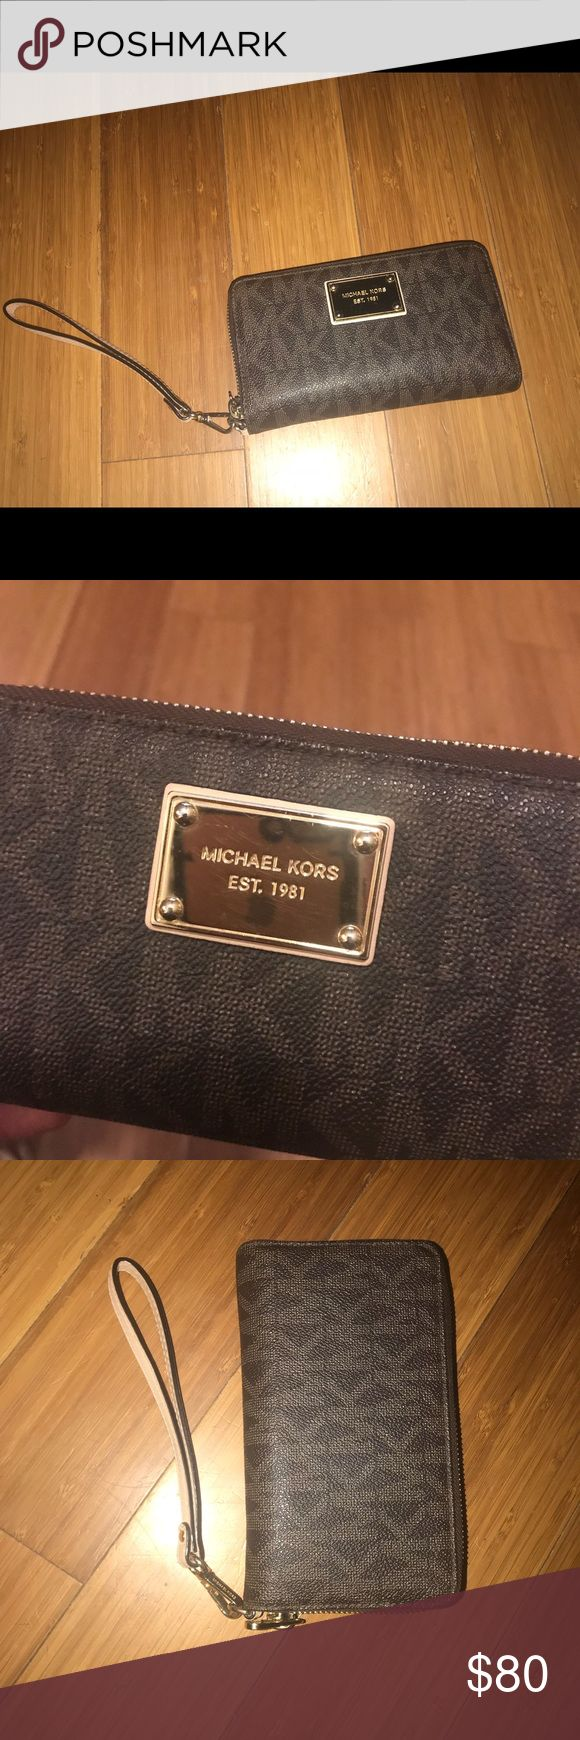 Michael Kors Jet Set Tech Wristlet Perfect condition with tags! Used for two days. Michael Kors Bags